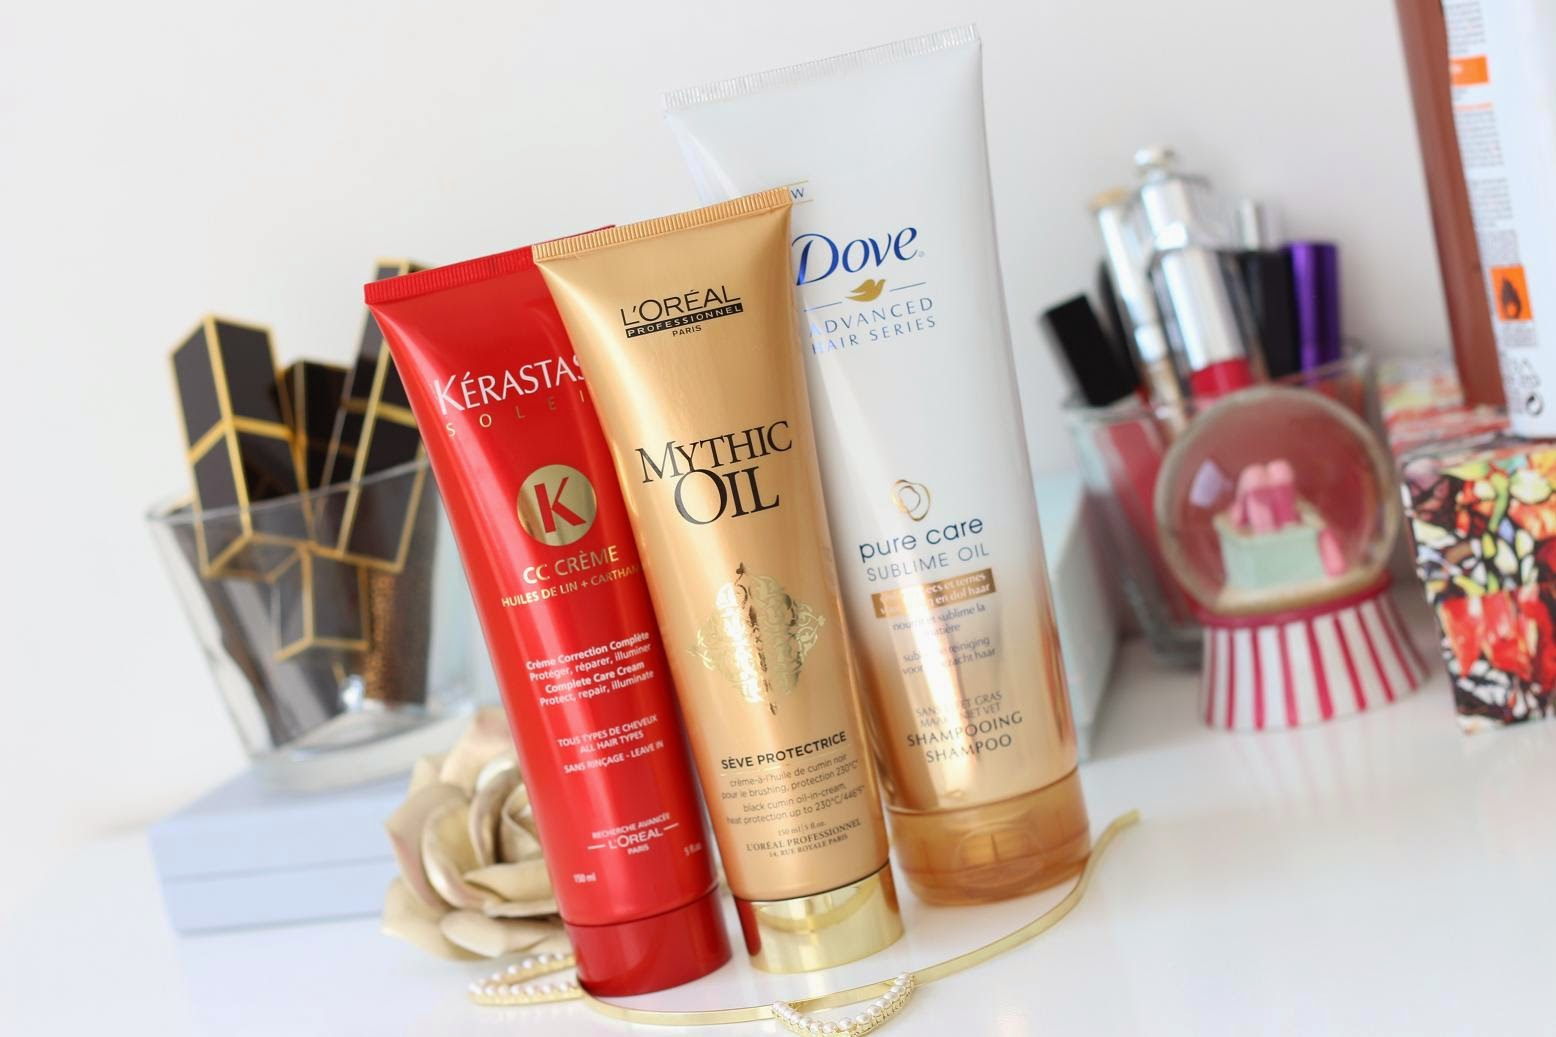 Kérastase CC Crème - L'Oréal Professionnel Mythic Oil - Dove Pure Care Sublime Oil